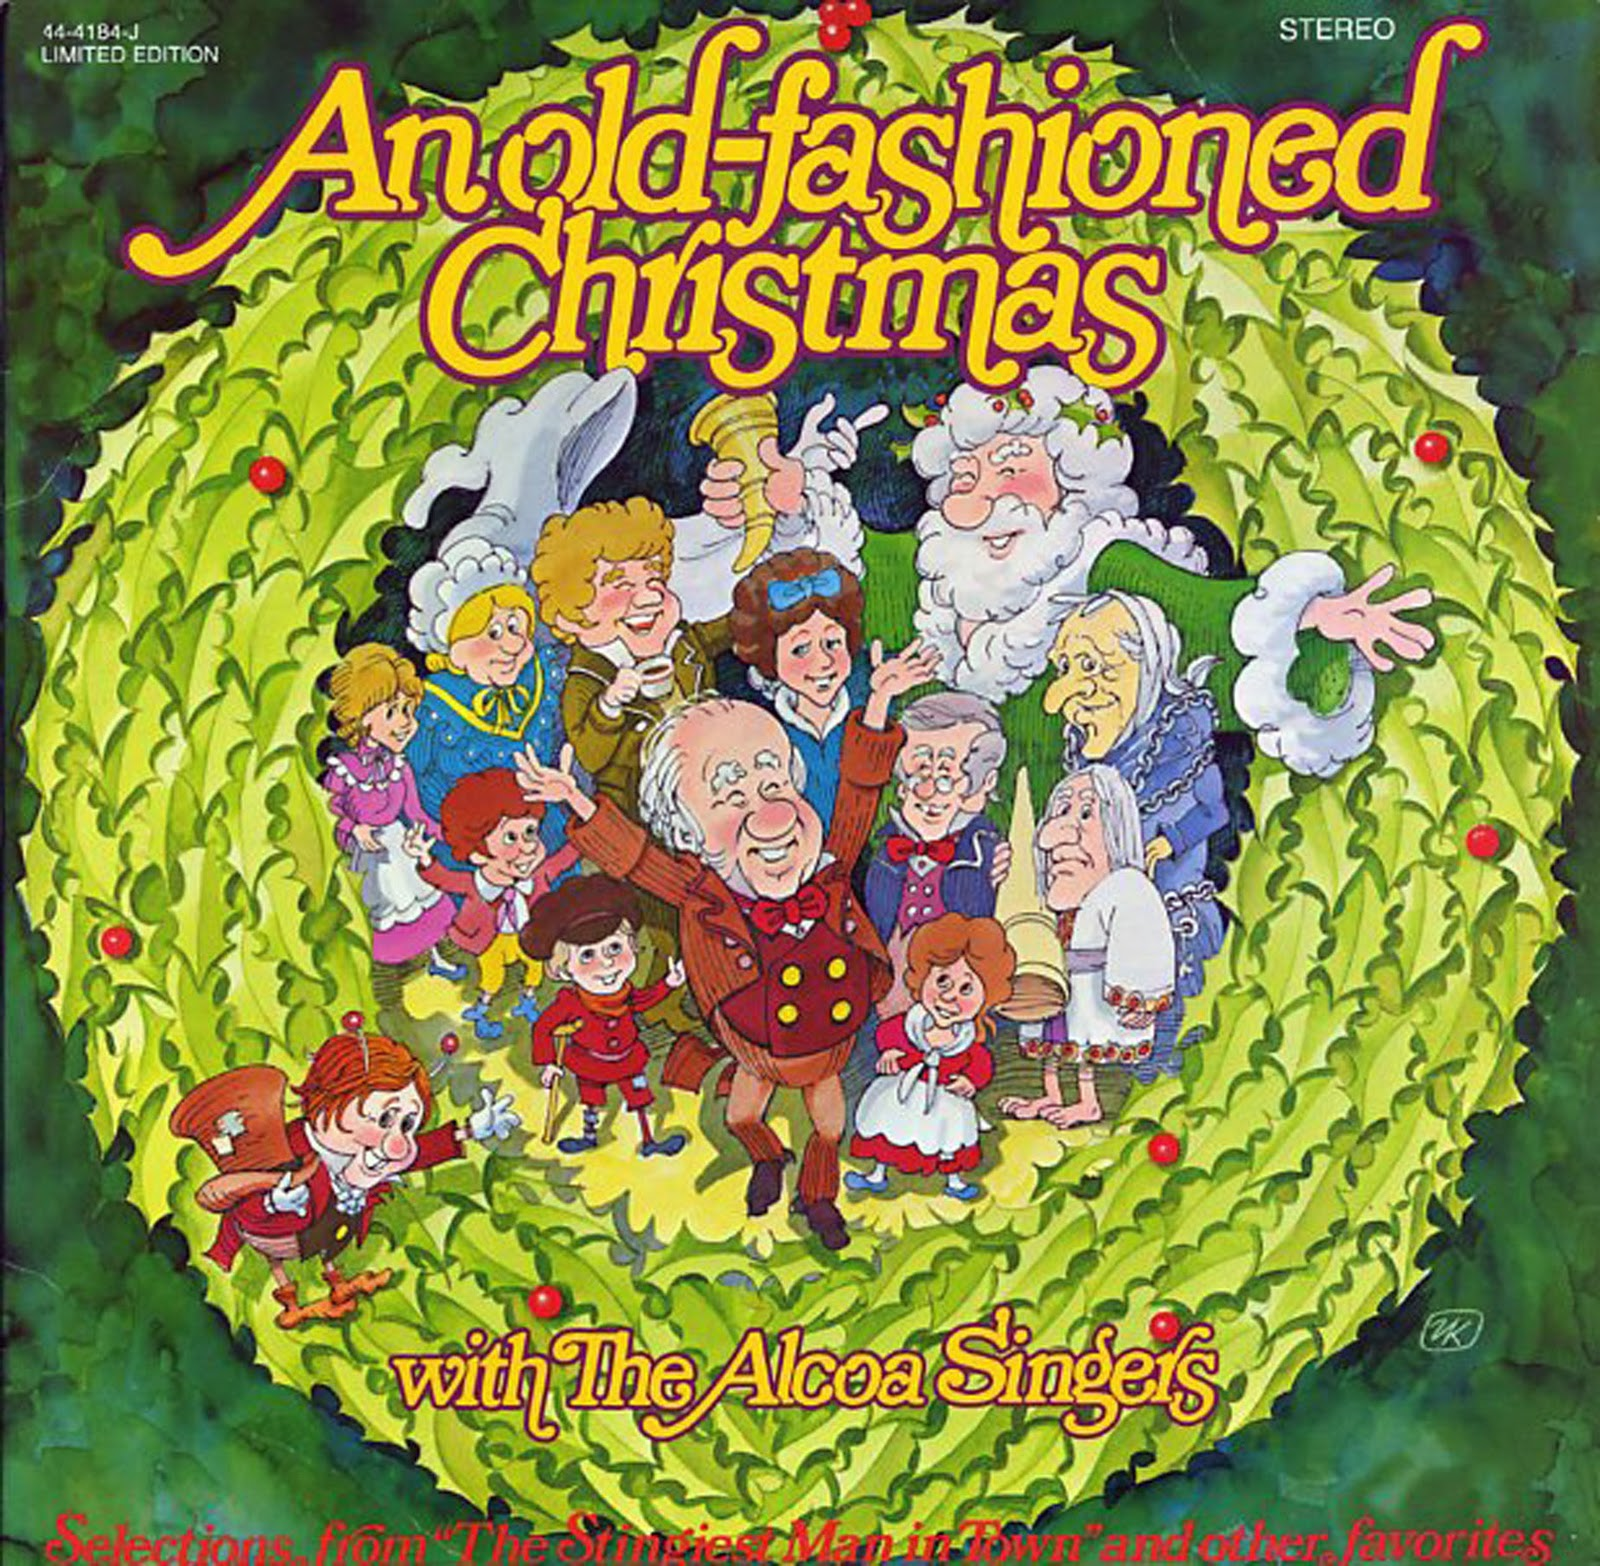 An Old-fashioned Christmas with The Alcoa Singers. 44-04184-J ...